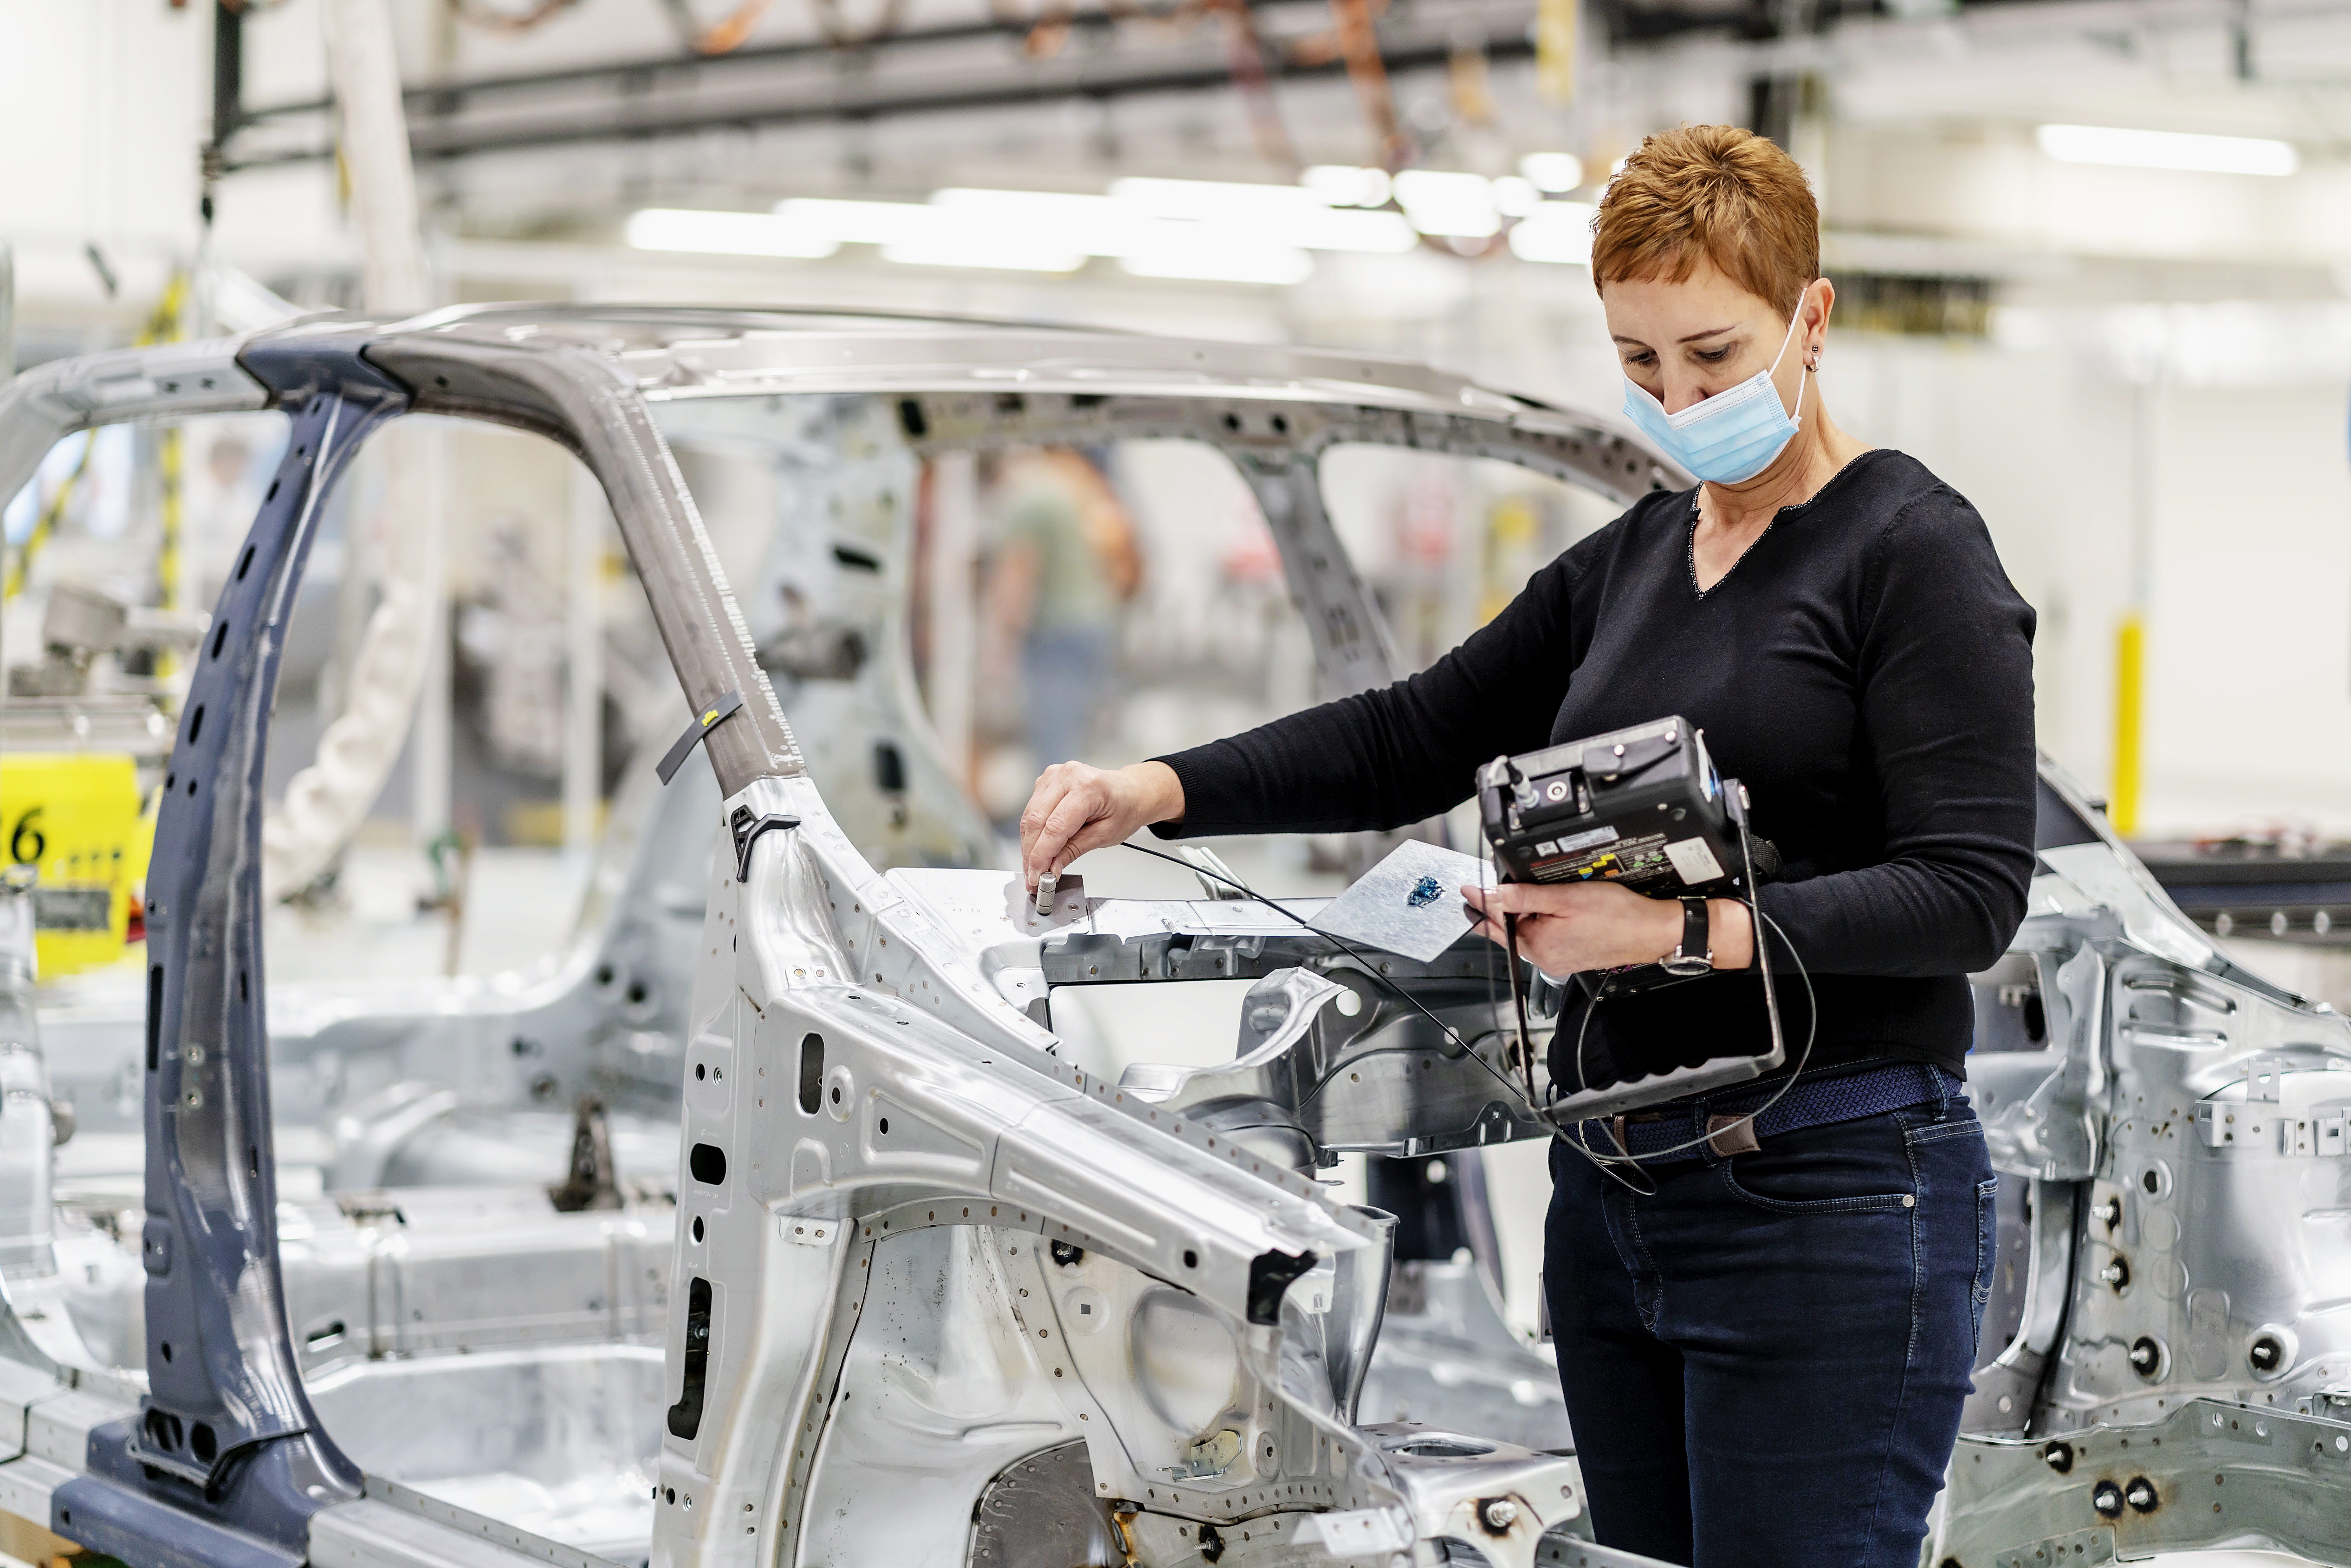 SKODA AUTO opens new centre in Mladá Boleslav to build test vehicles and prototypes - Image 2